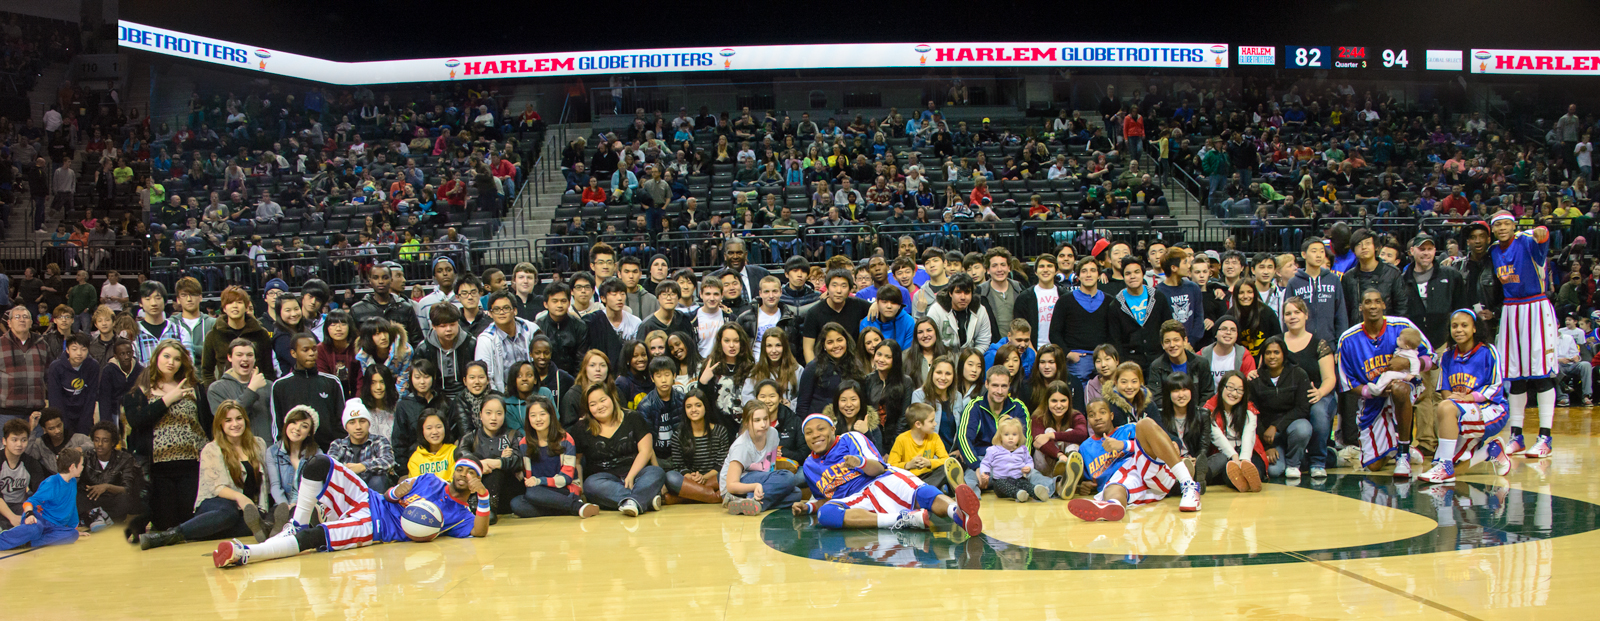 School Event with Harlem Globetrotters